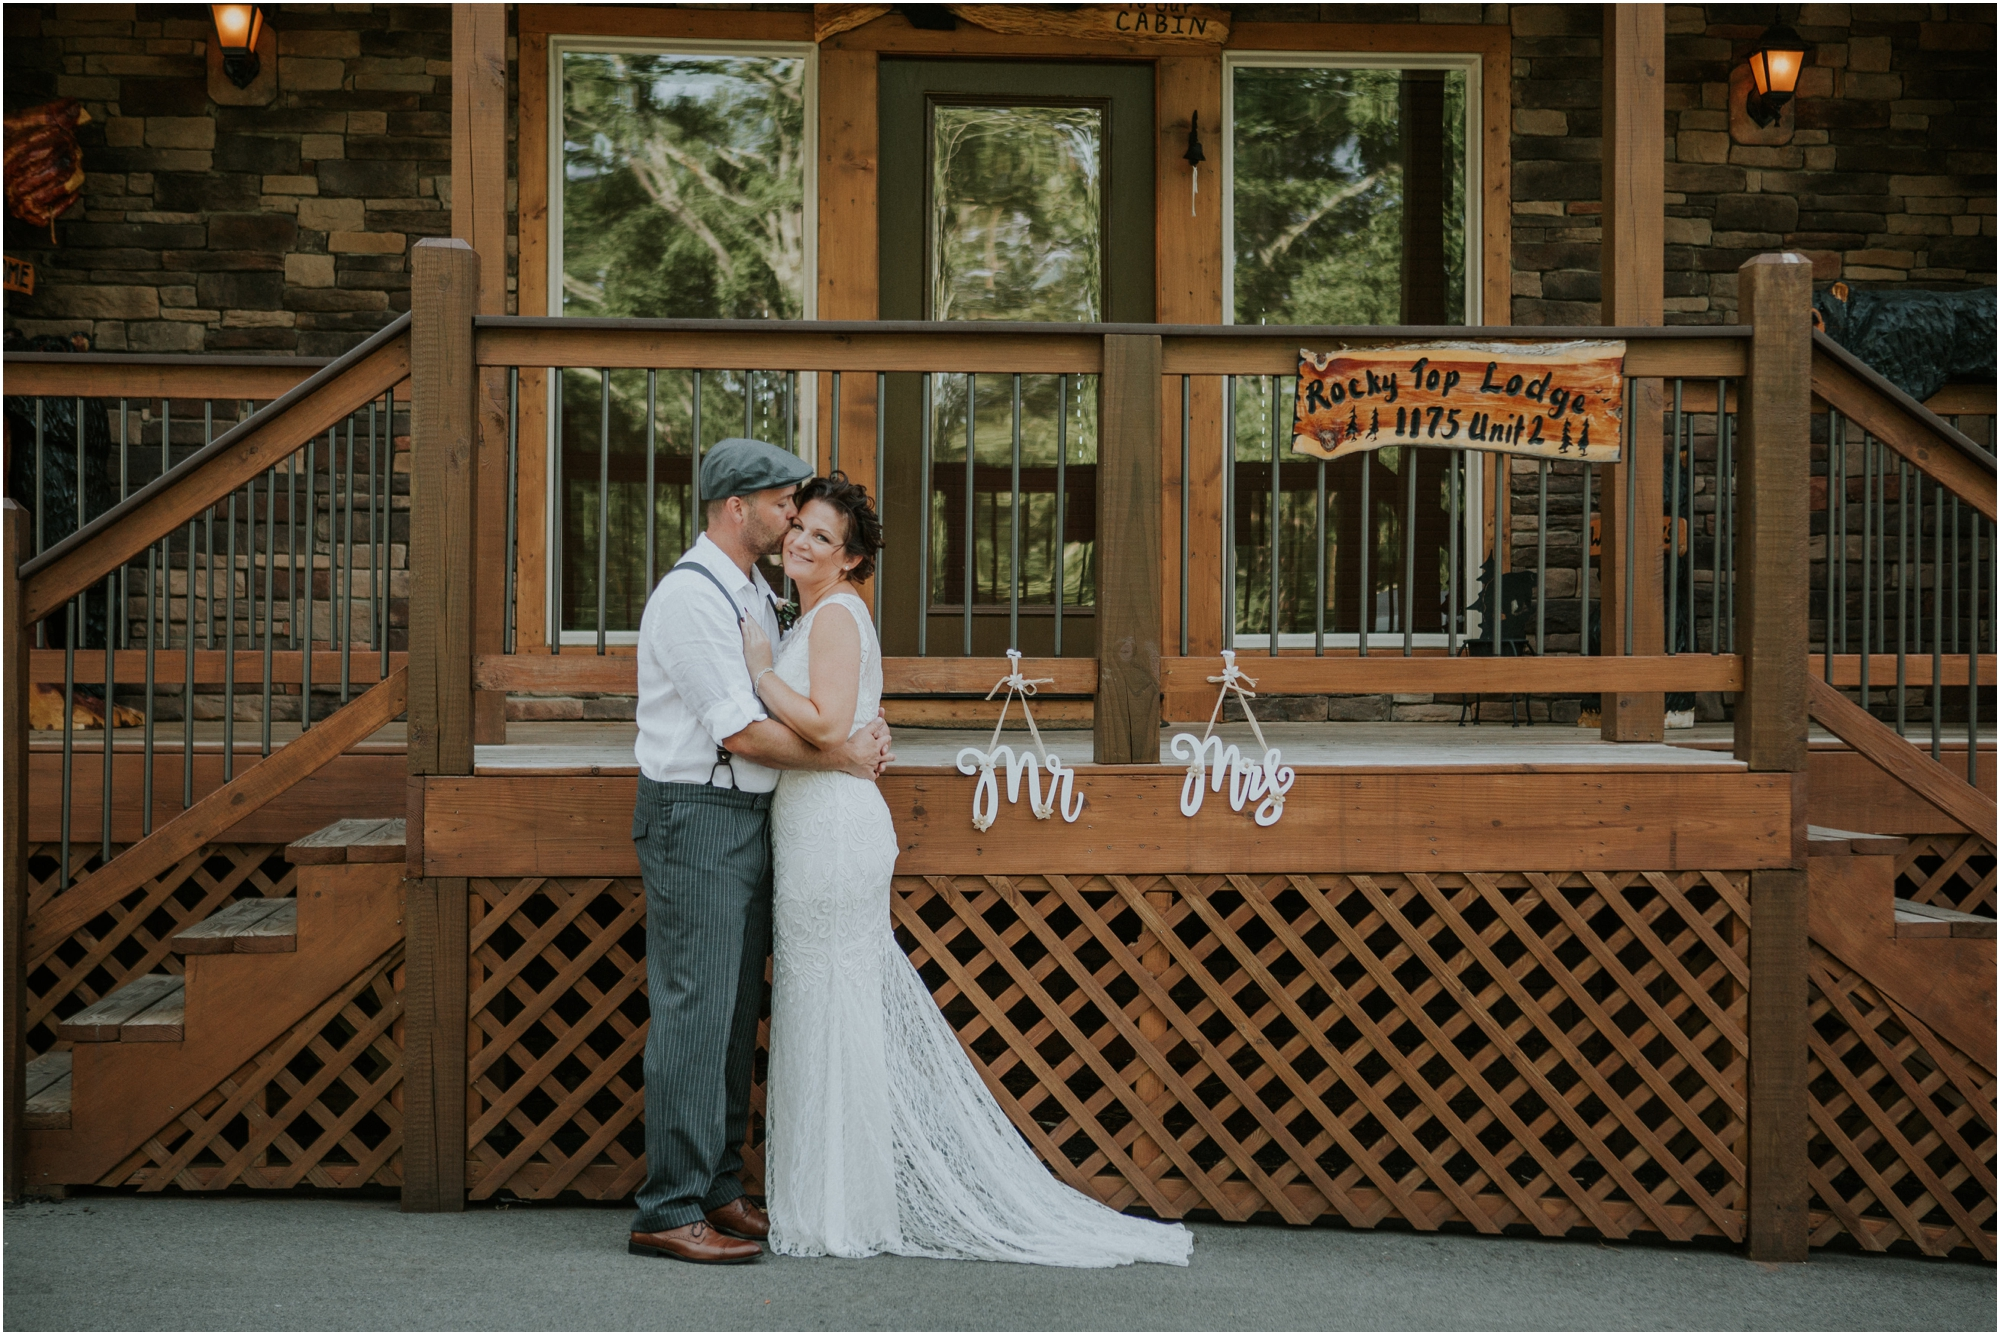 cabin-parkside-resort-the-magnolia-venue-tennessee-mountain-views-intimate-wedding_0065.jpg